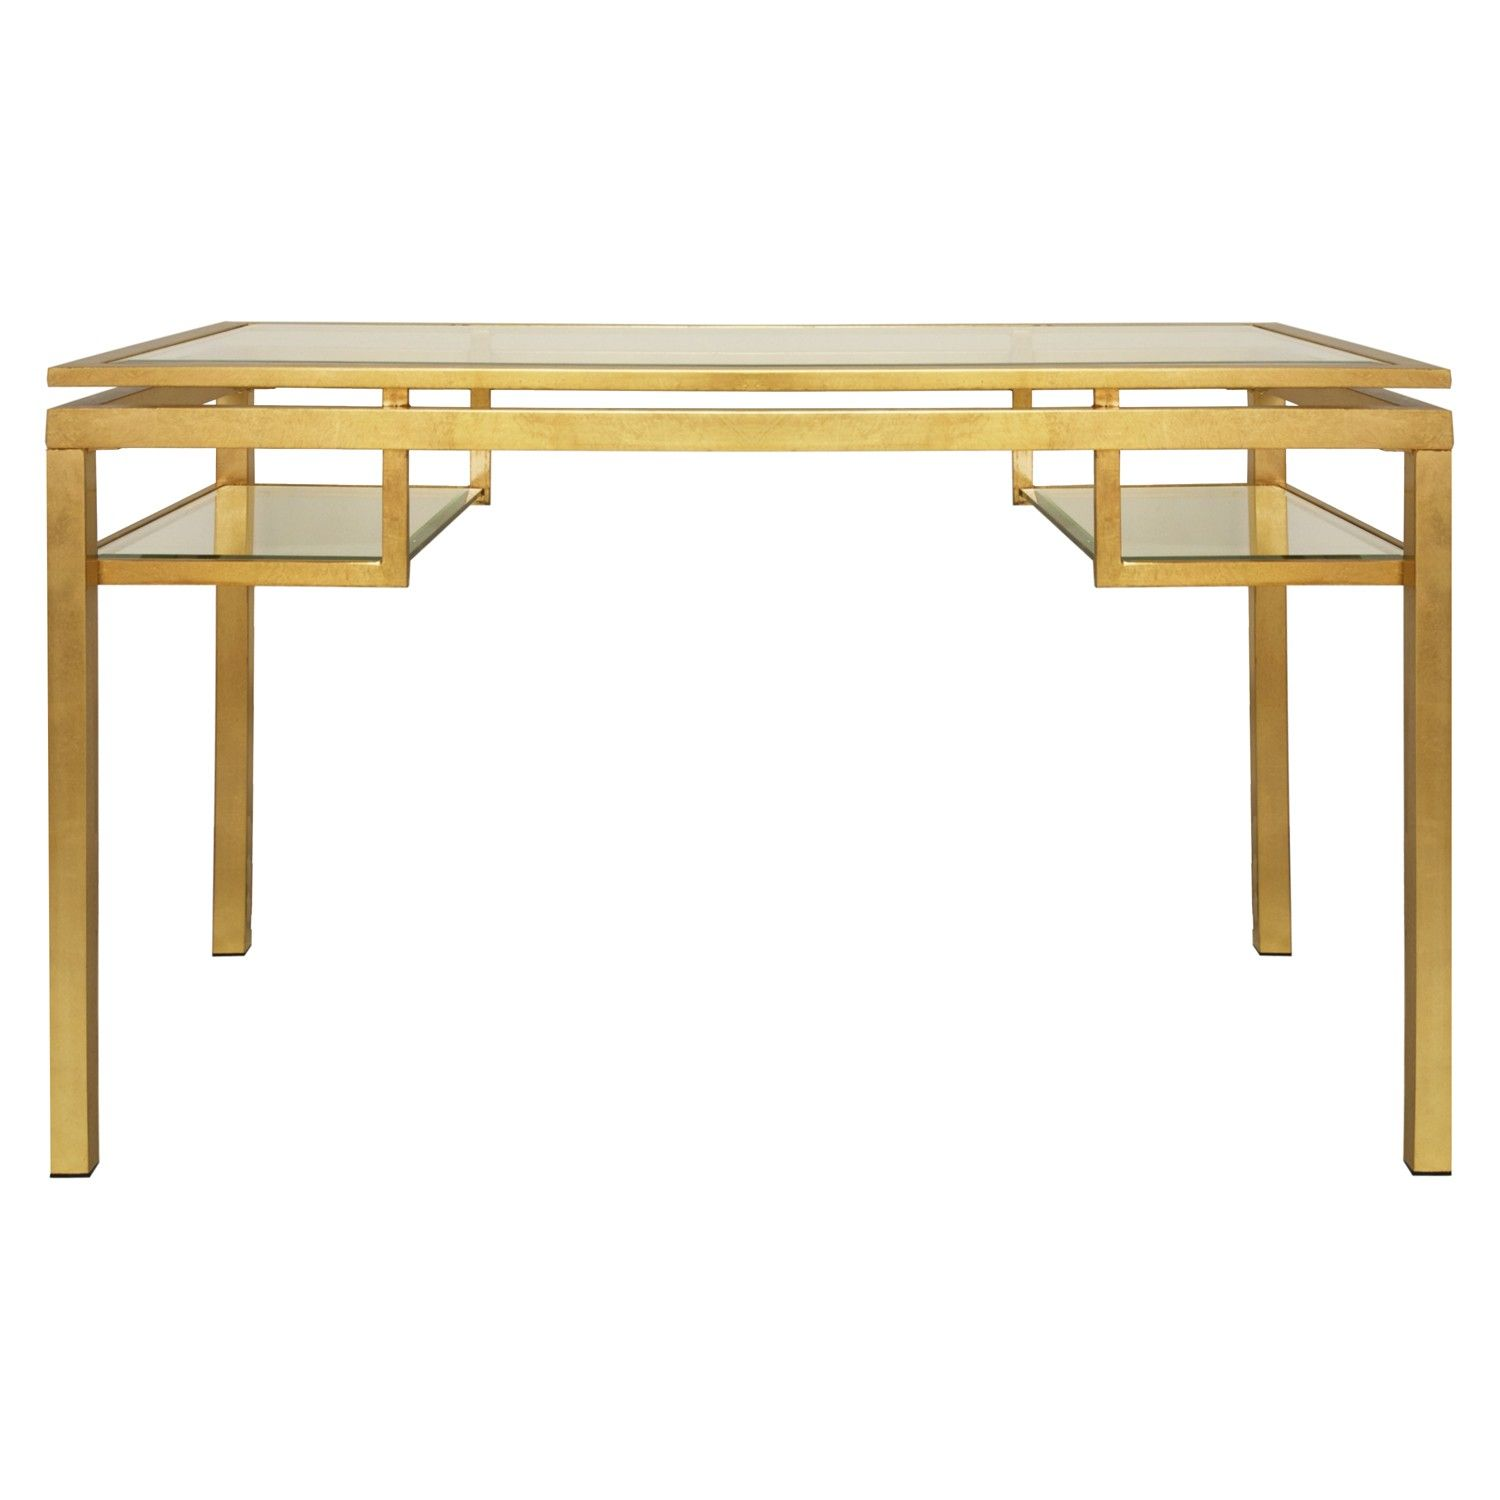 Bwood Gold Desk W 54 D 28 H 30 Gl Top 1687 50 Writing Under2k